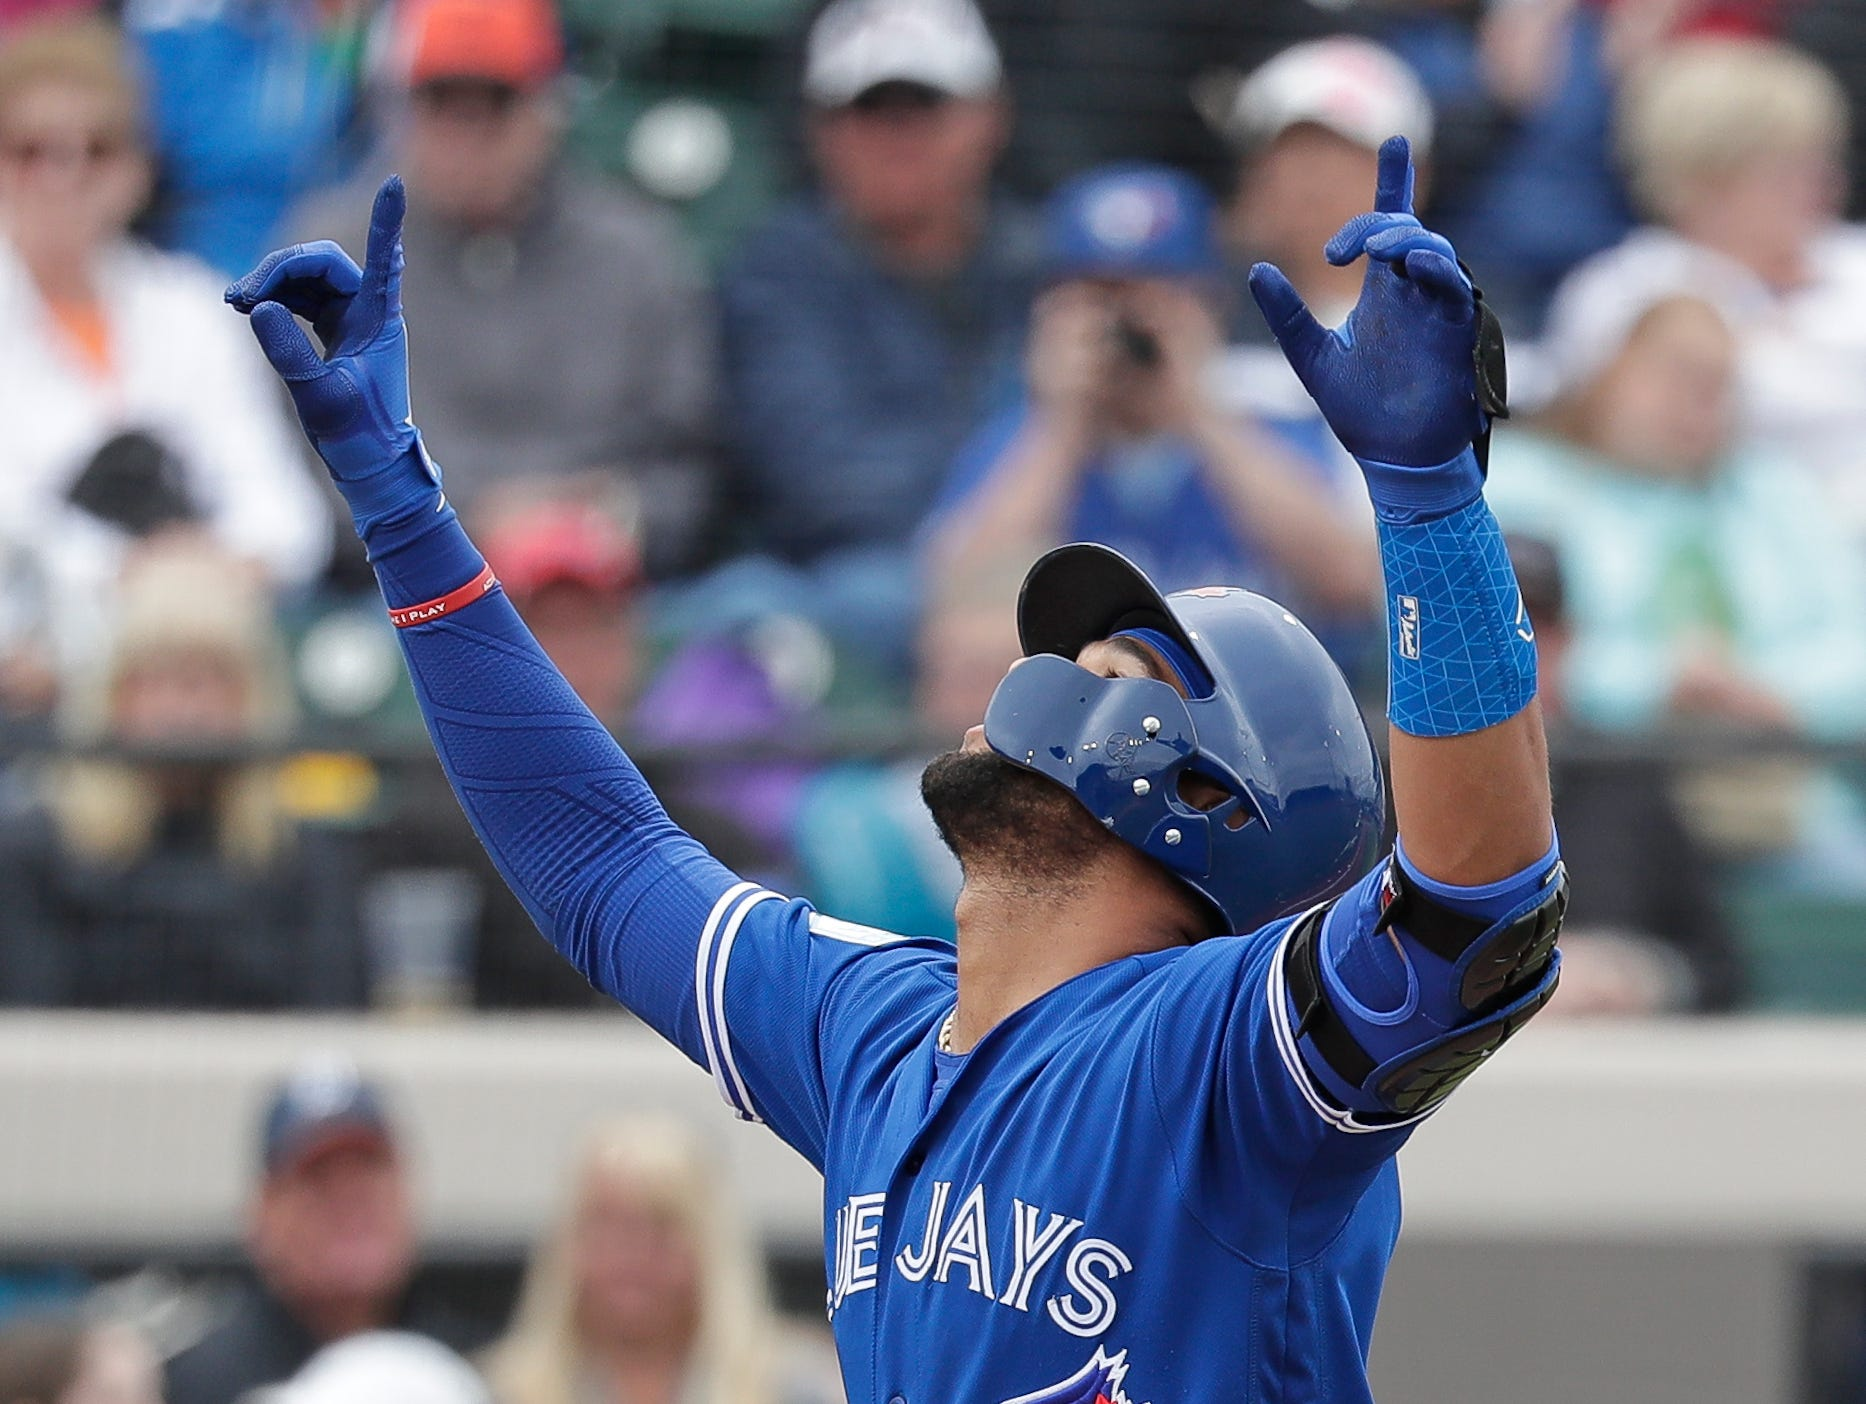 Toronto Blue Jays' Lourdes Gurriel Jr. points upward as he crosses the plate after hitting a home run against the Detroit Tigers in the fourth inning of a spring training baseball game.